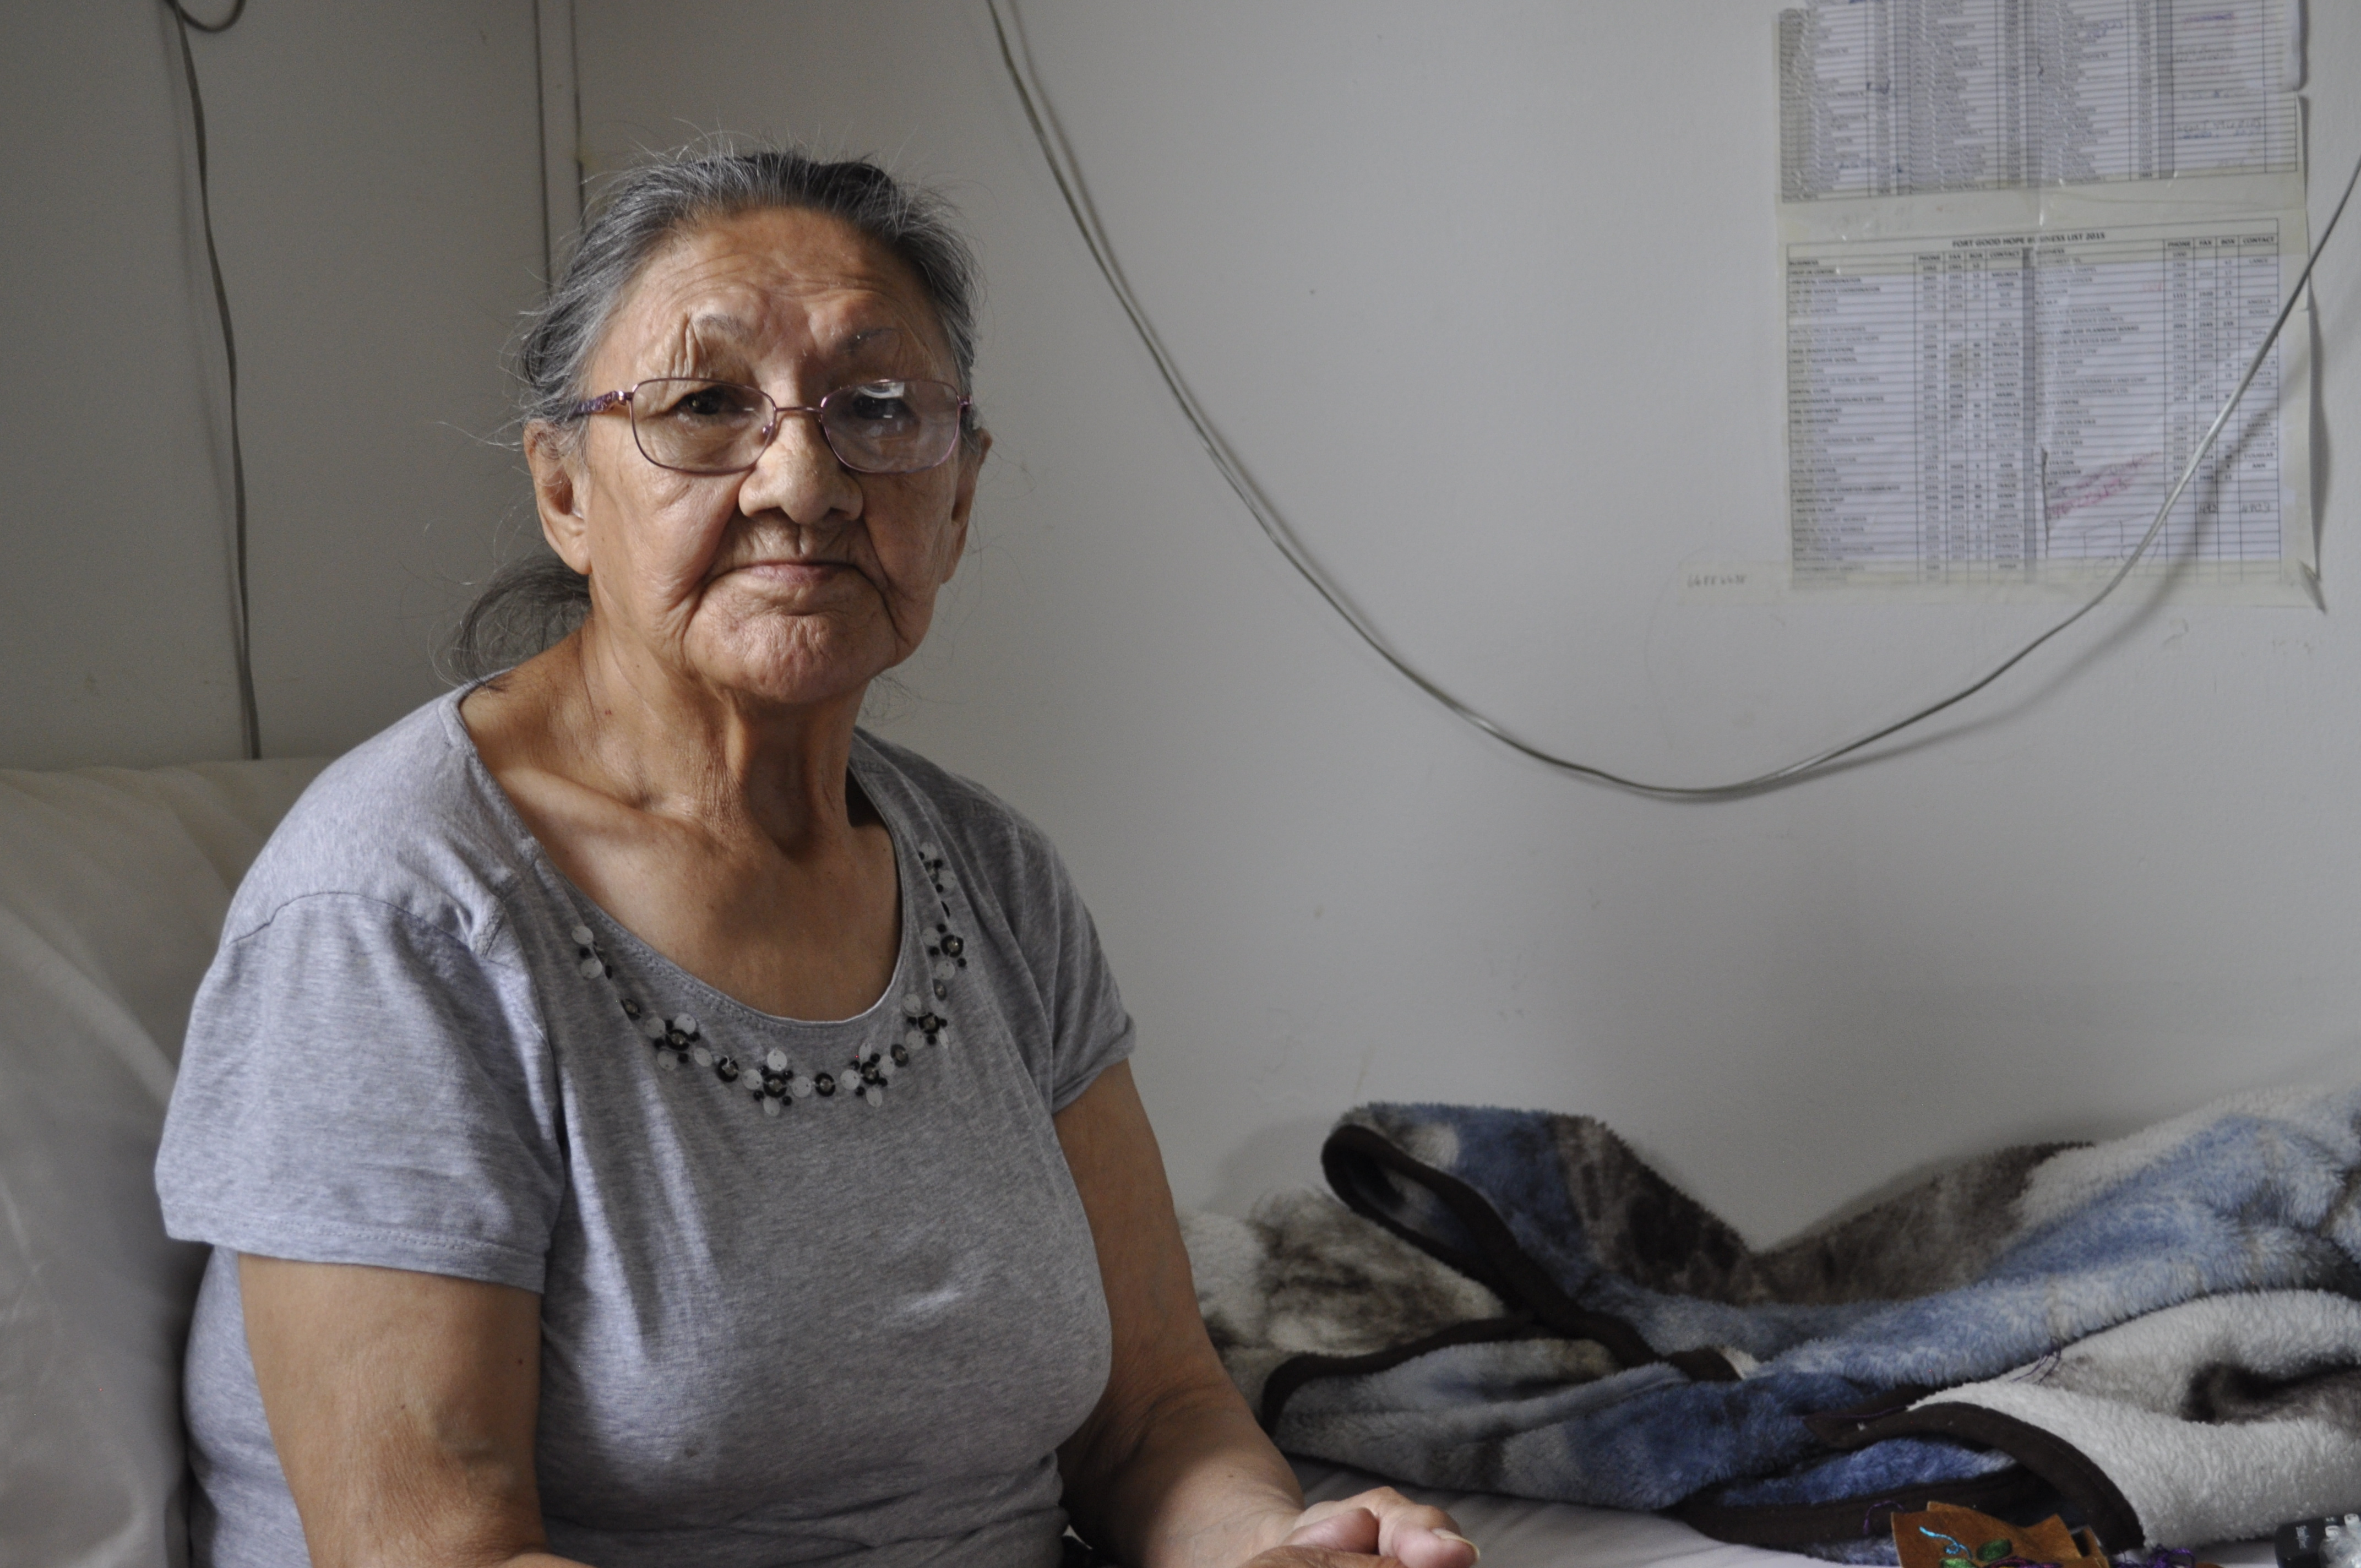 Margaret Kelly sits in her home in Fort Good Hope, N.W.T. She's done fighting the land and is ready to move out. (Alex Brockman/CBC)